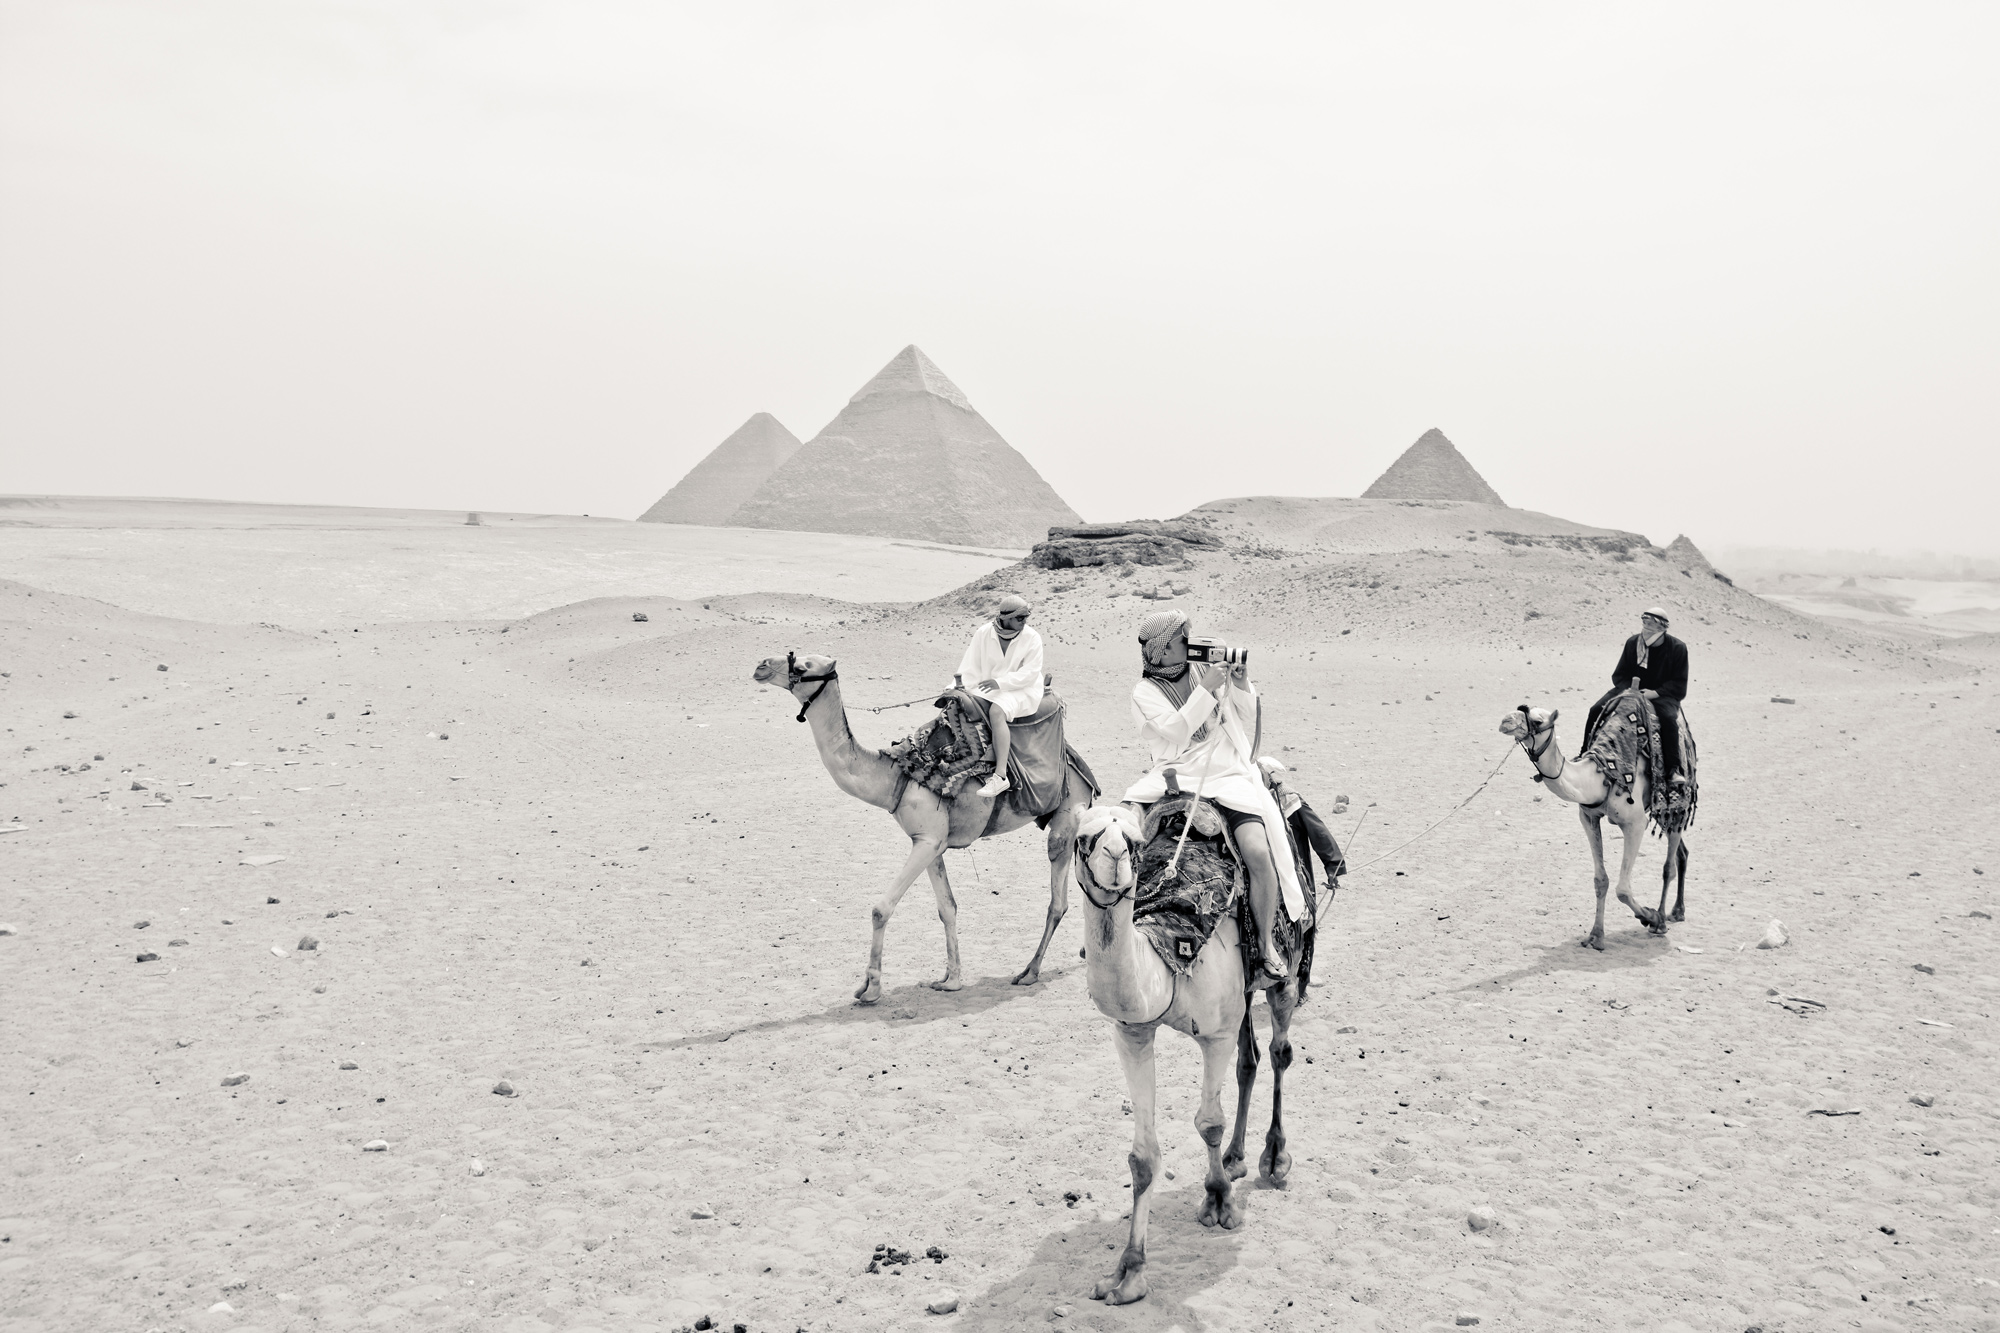 #115: SEE THE PYRAMIDS